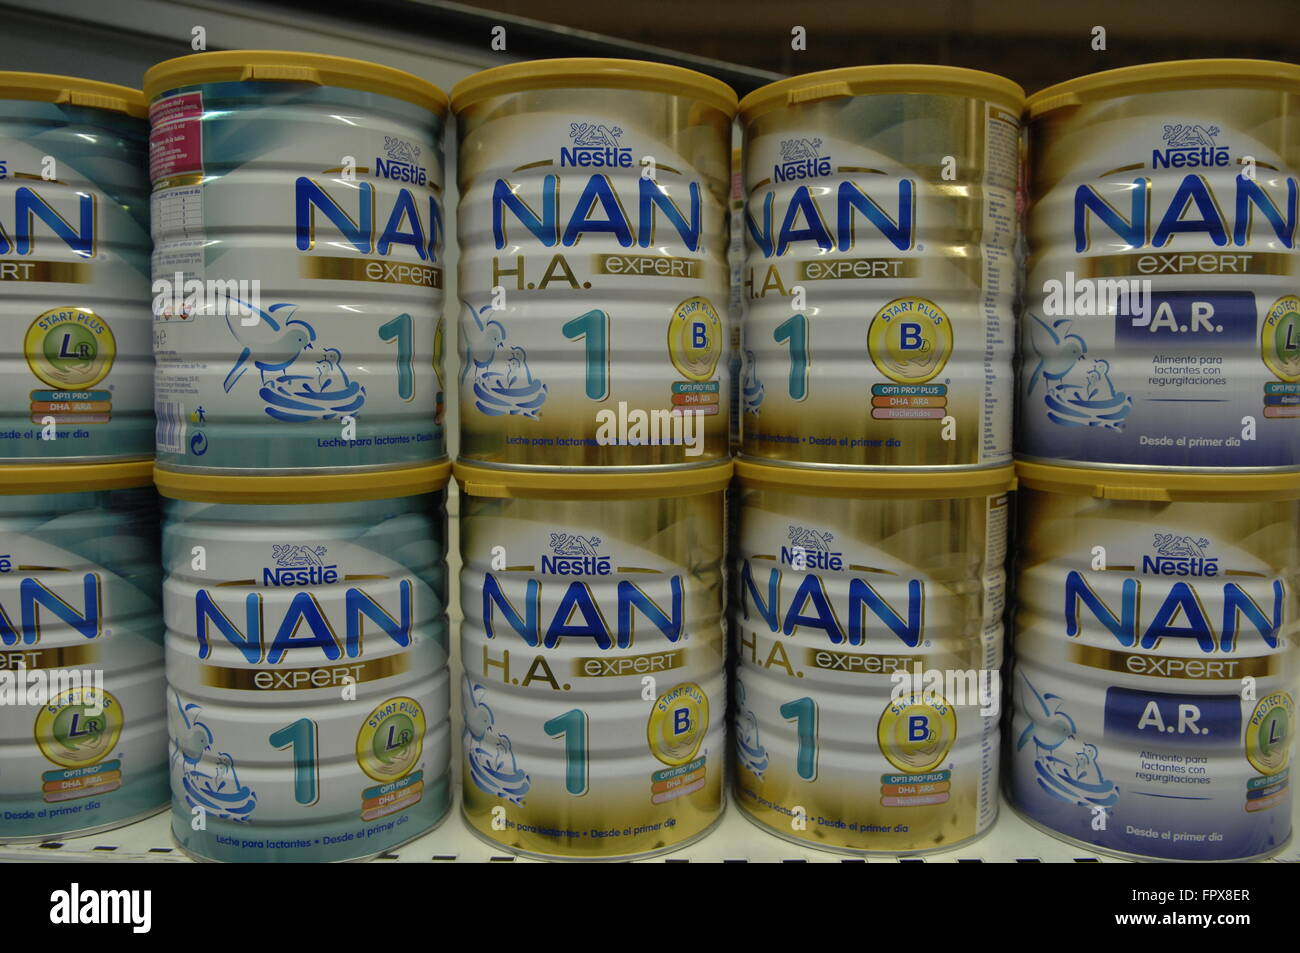 Nestle Nan Baby Food on display in a Carrefour Store. Stock Photo